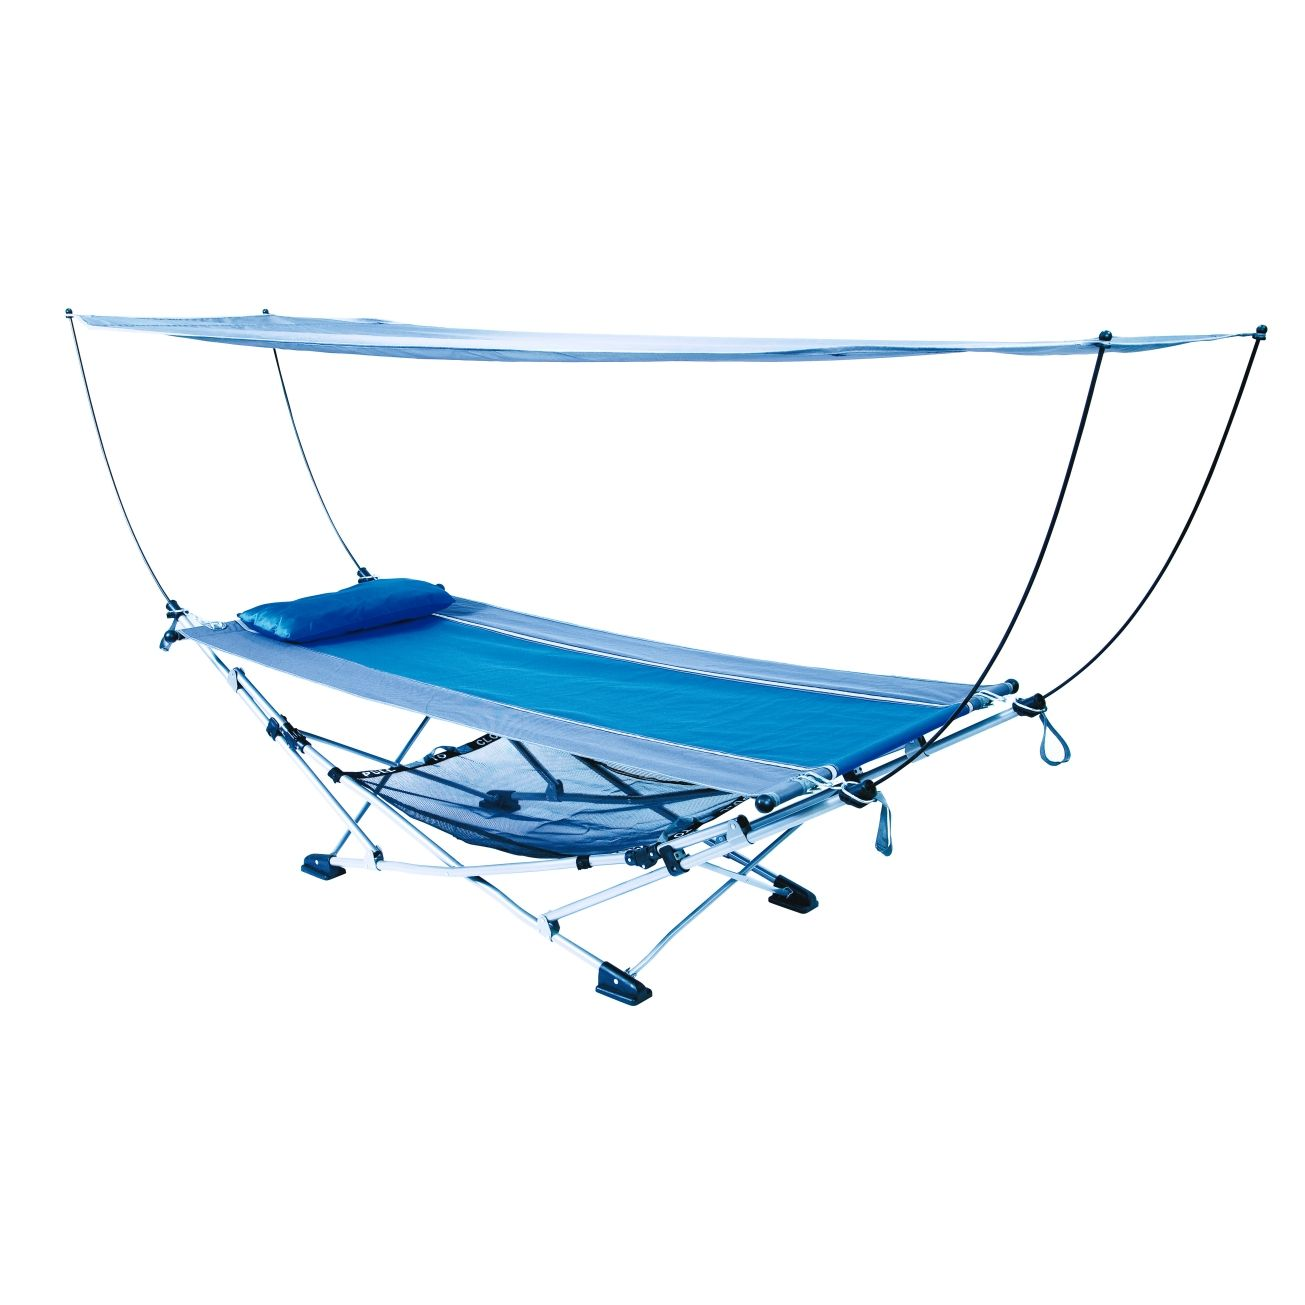 Explore Hammock With Canopy Portable Hammock and more!  sc 1 st  Pinterest & Mac Sports Portable Hammock W/ Removable Canopy (H805S) - Hammocks ...